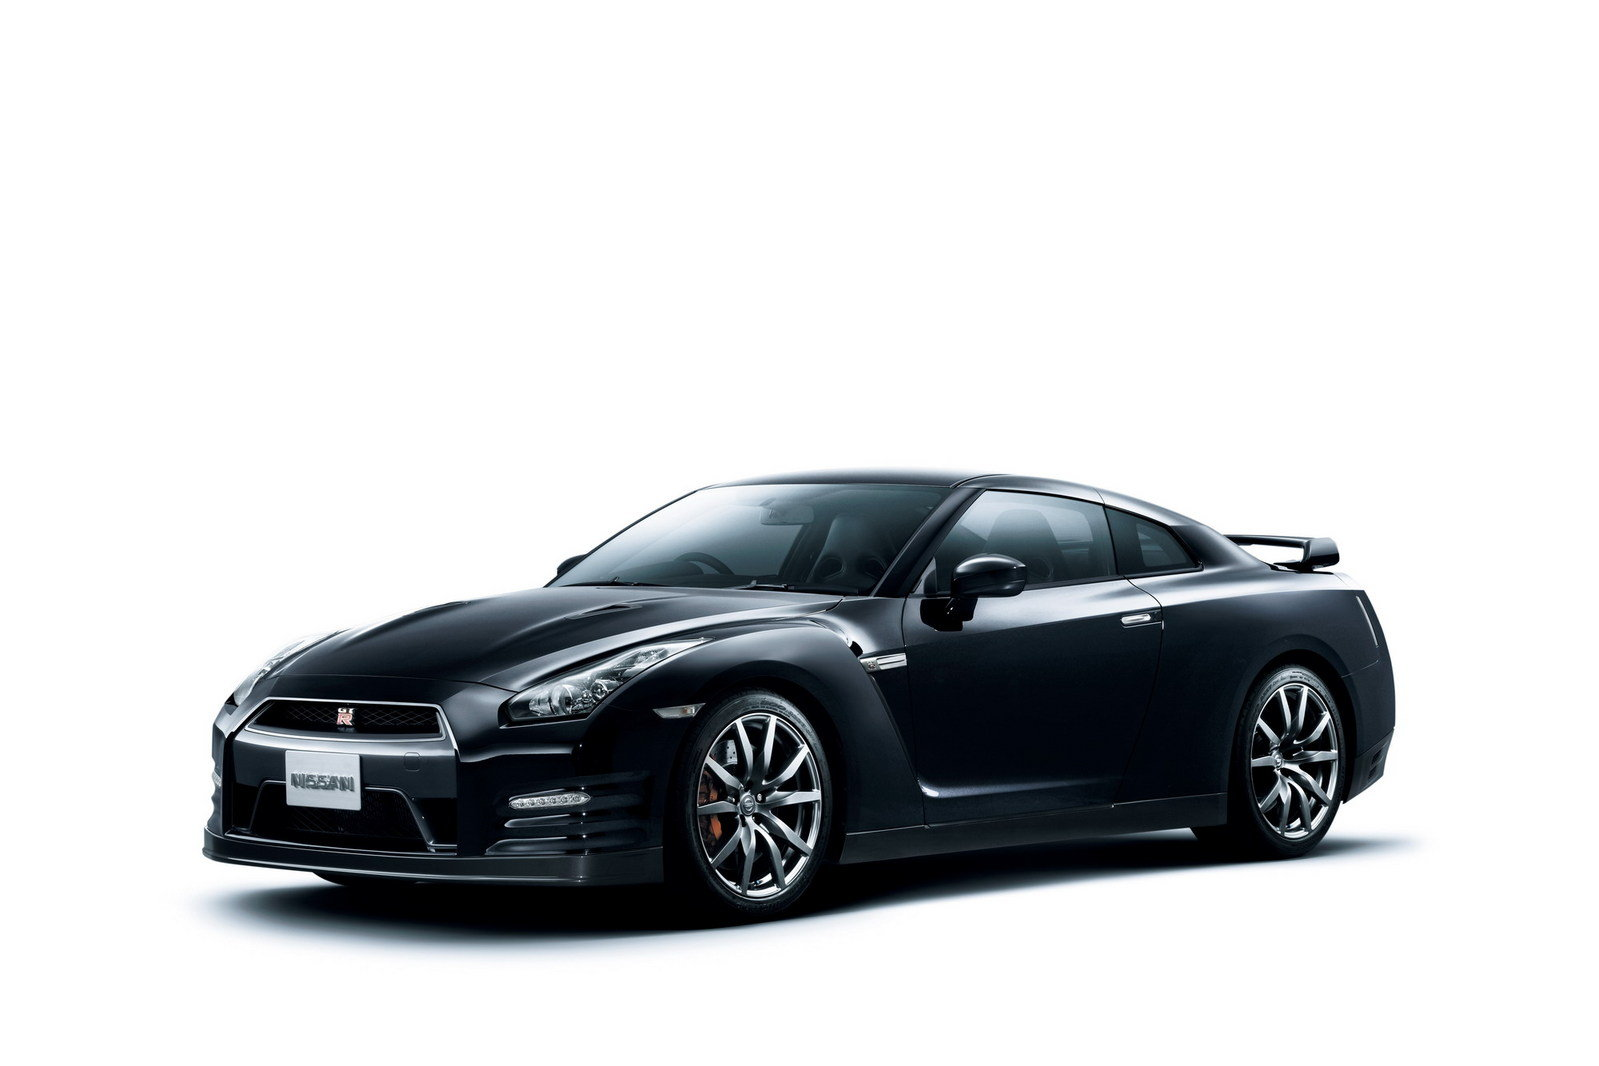 2012 nissan gt r picture 378043 car review top speed. Black Bedroom Furniture Sets. Home Design Ideas